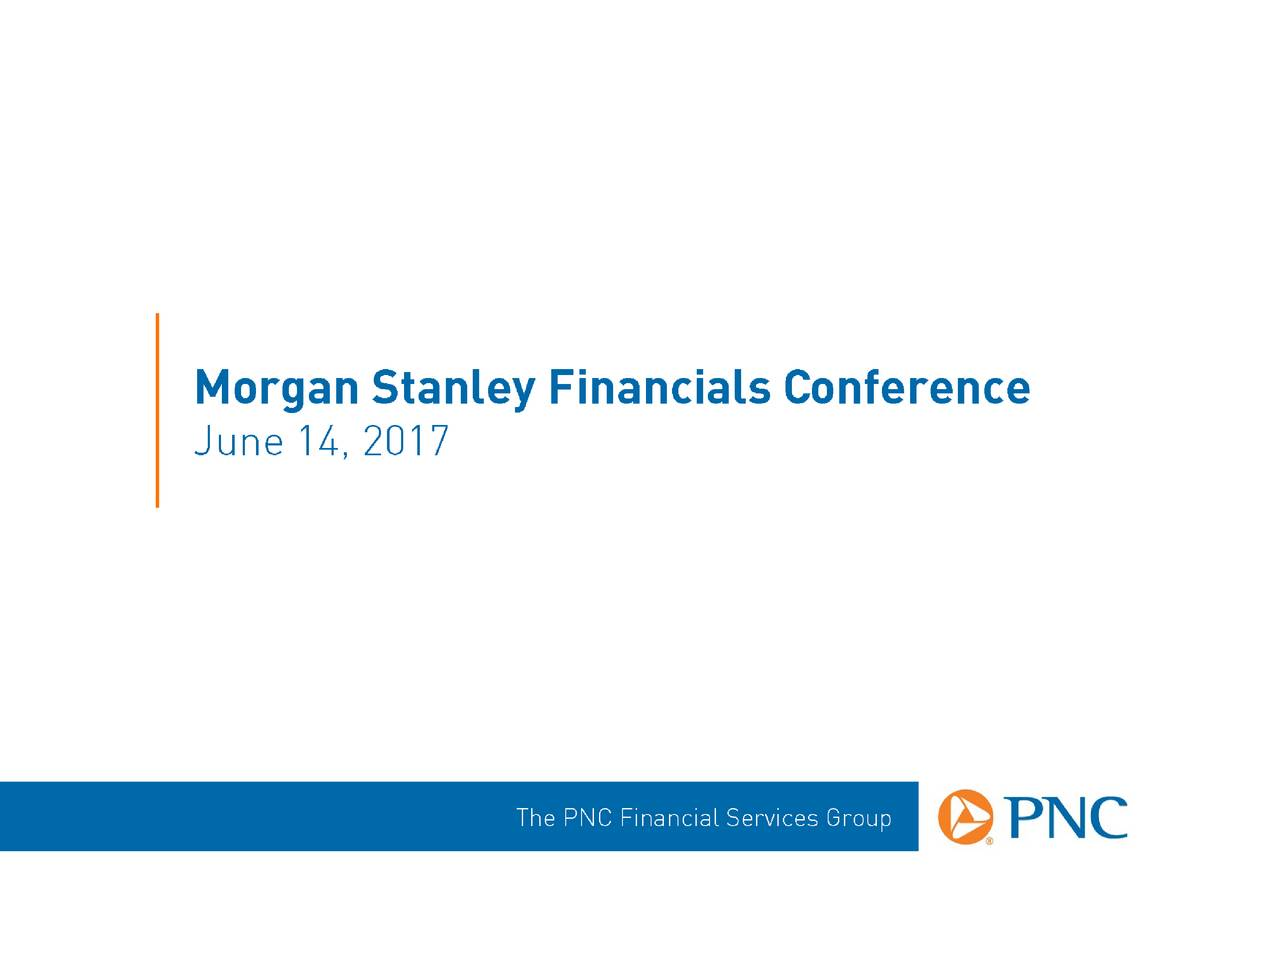 The PNC Financial Services Group (PNC) Presents At Morgan Stanley